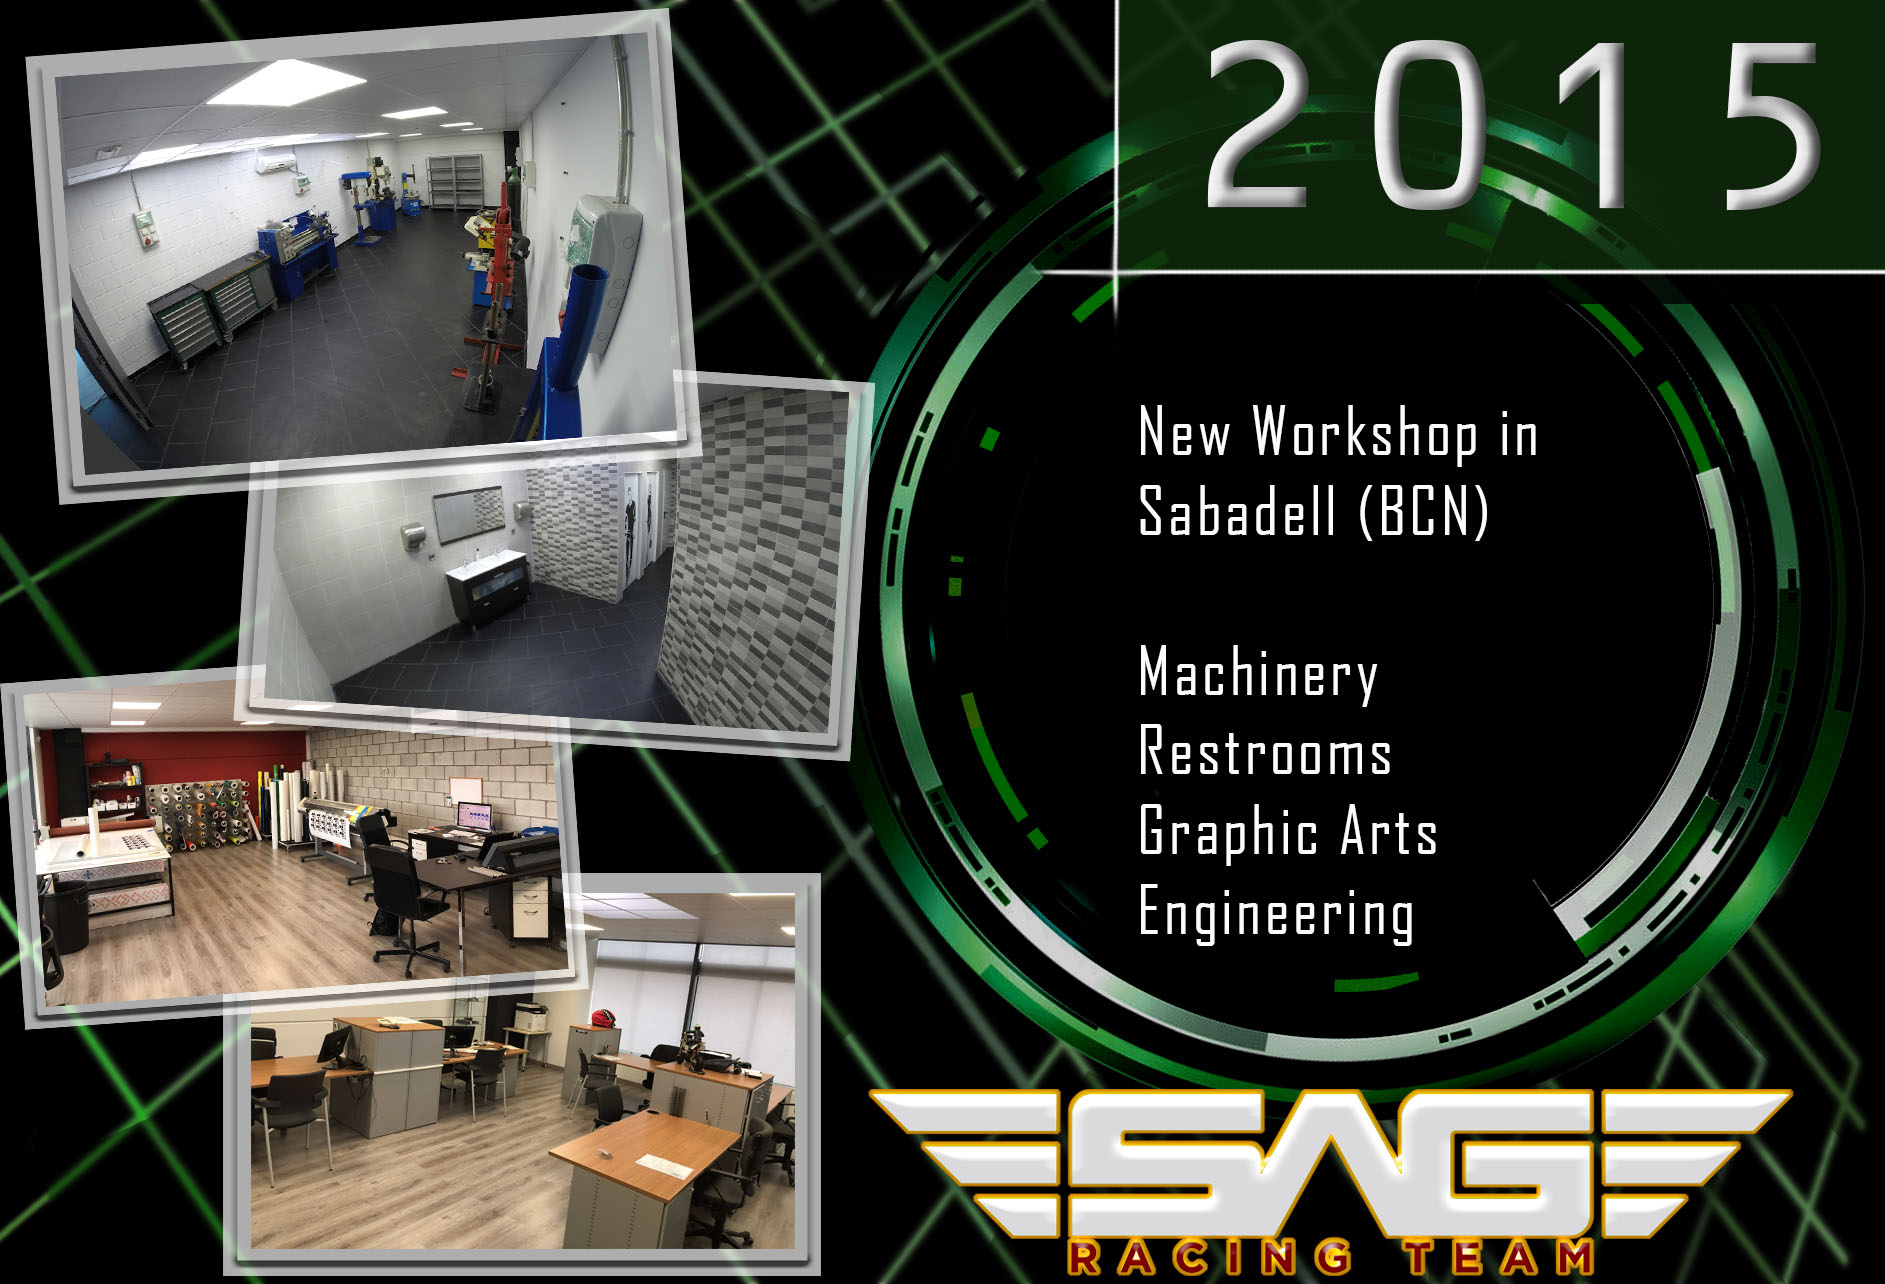 Machinery, Graphic Arts & Restrooms